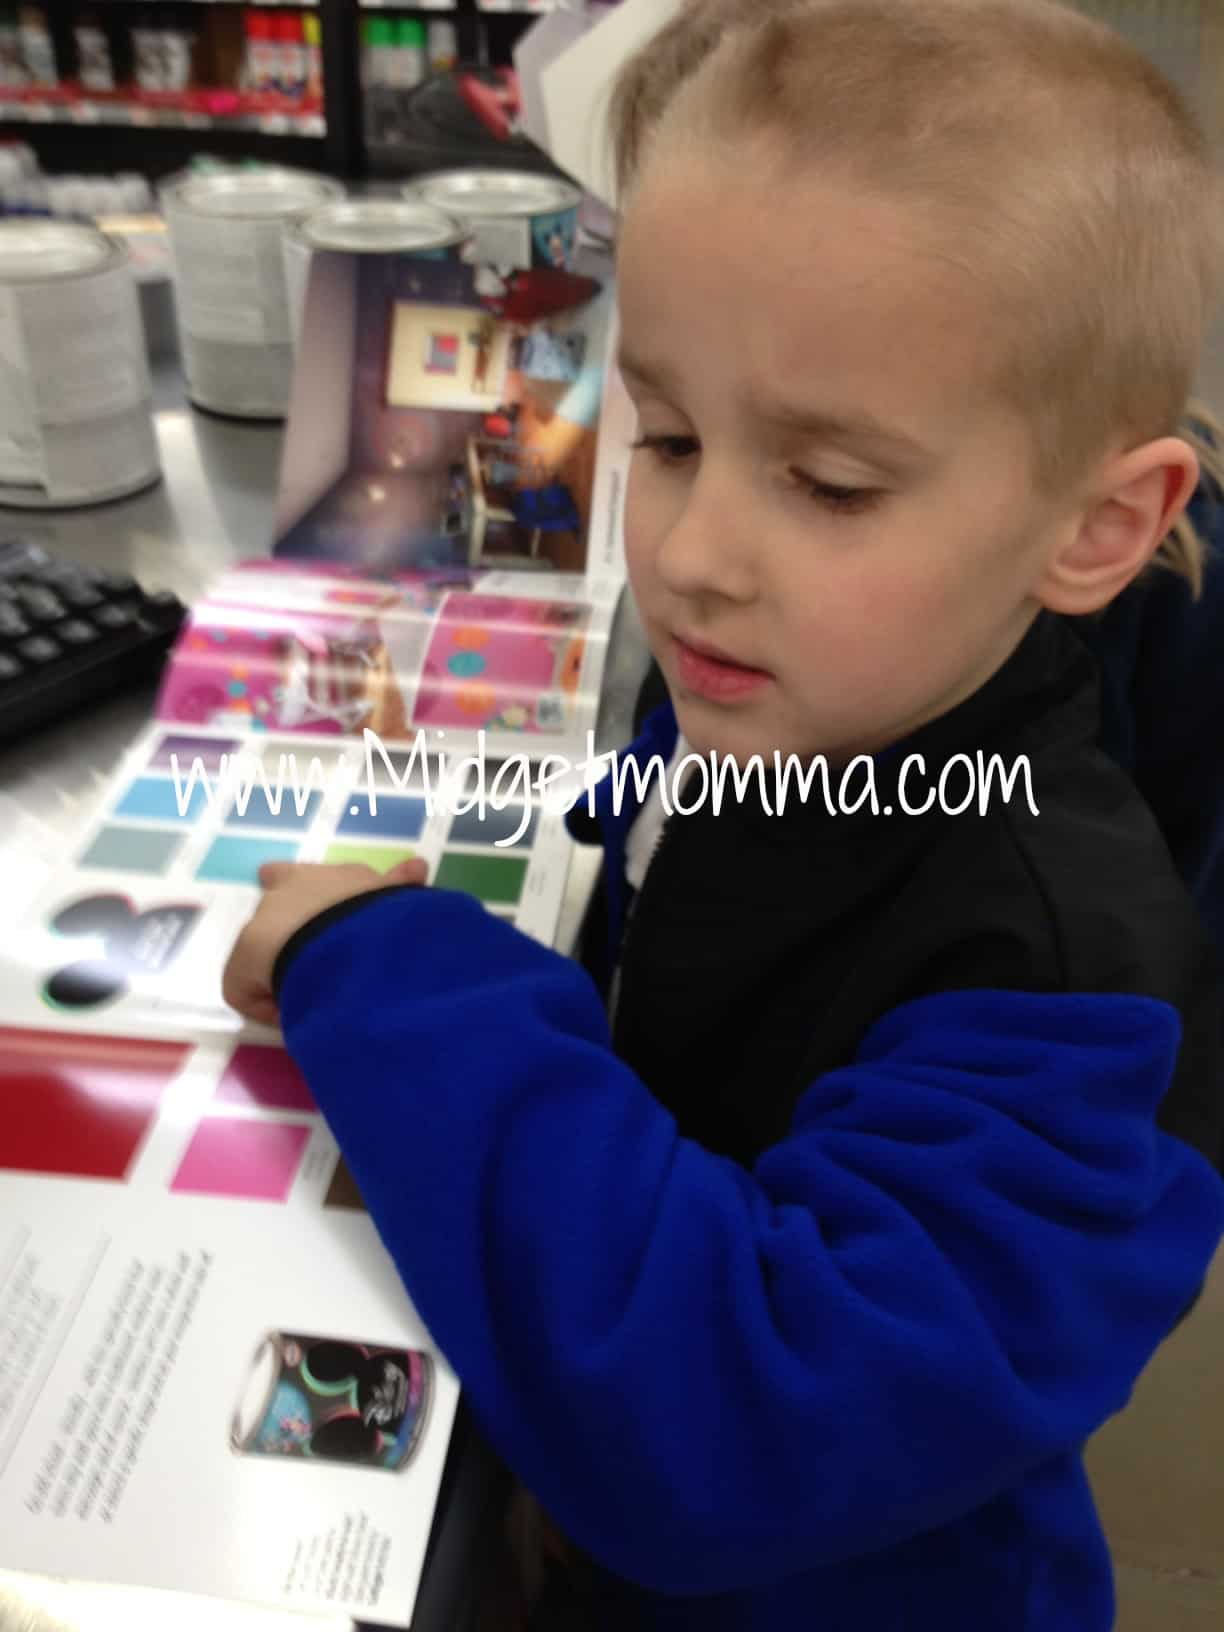 Checking out the New Disney Glidden Paint at Walmart! #DisneyPaintMoms